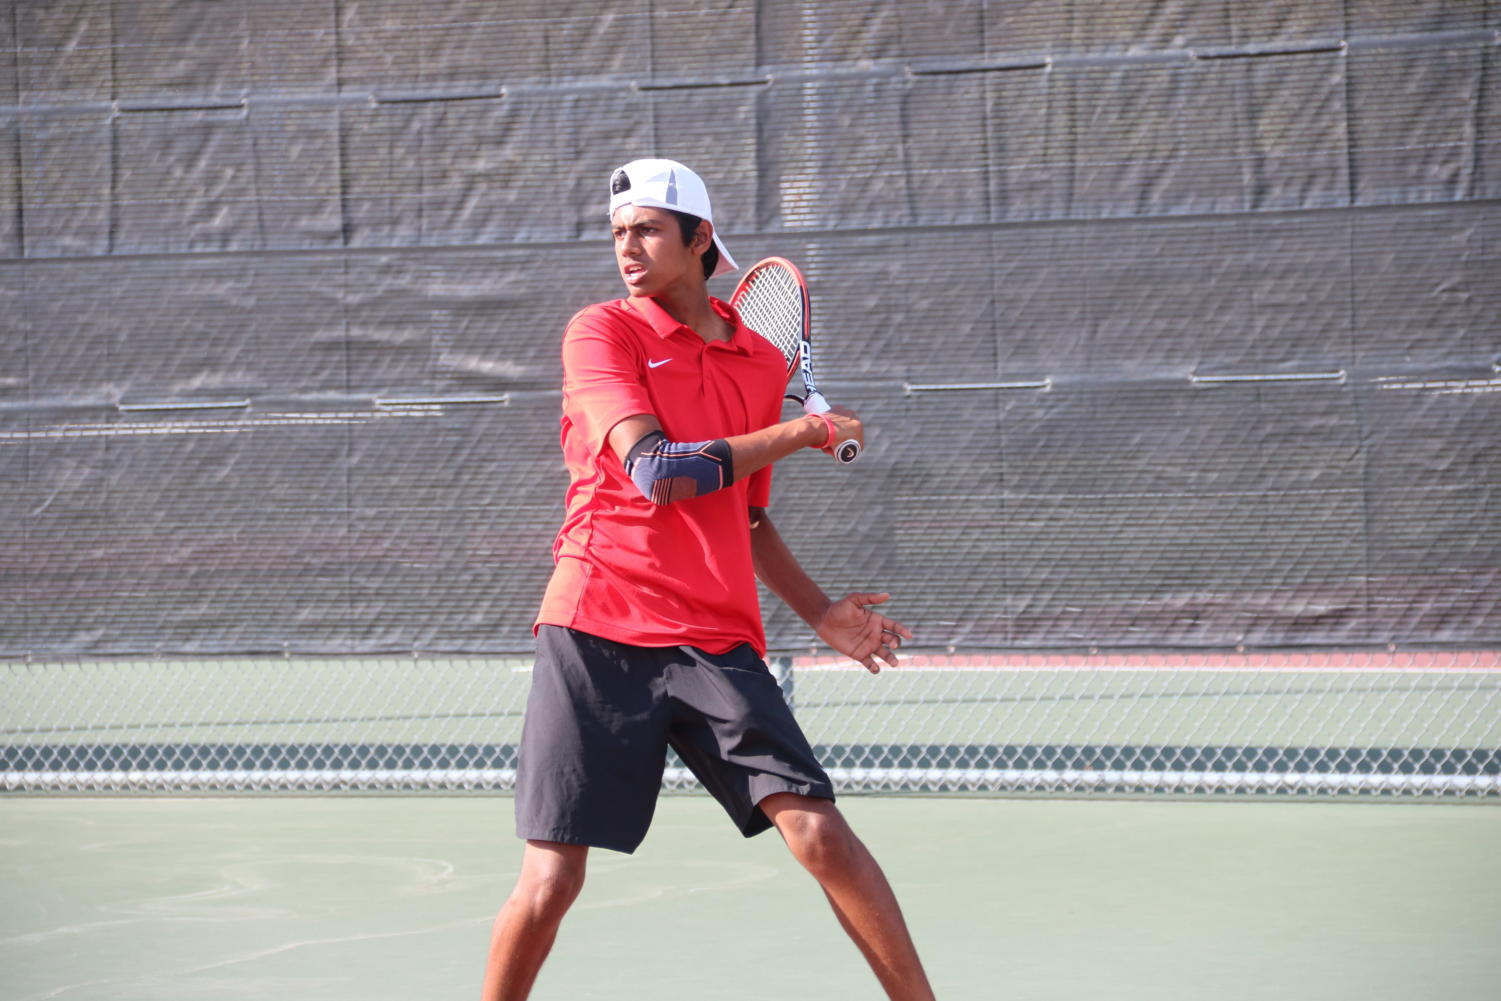 Coppell sophomore Vinay Patel prepares for a return against Longview at the Coppell High School Tennis Center on Saturday. Coppell defeated Longview, 17-2.